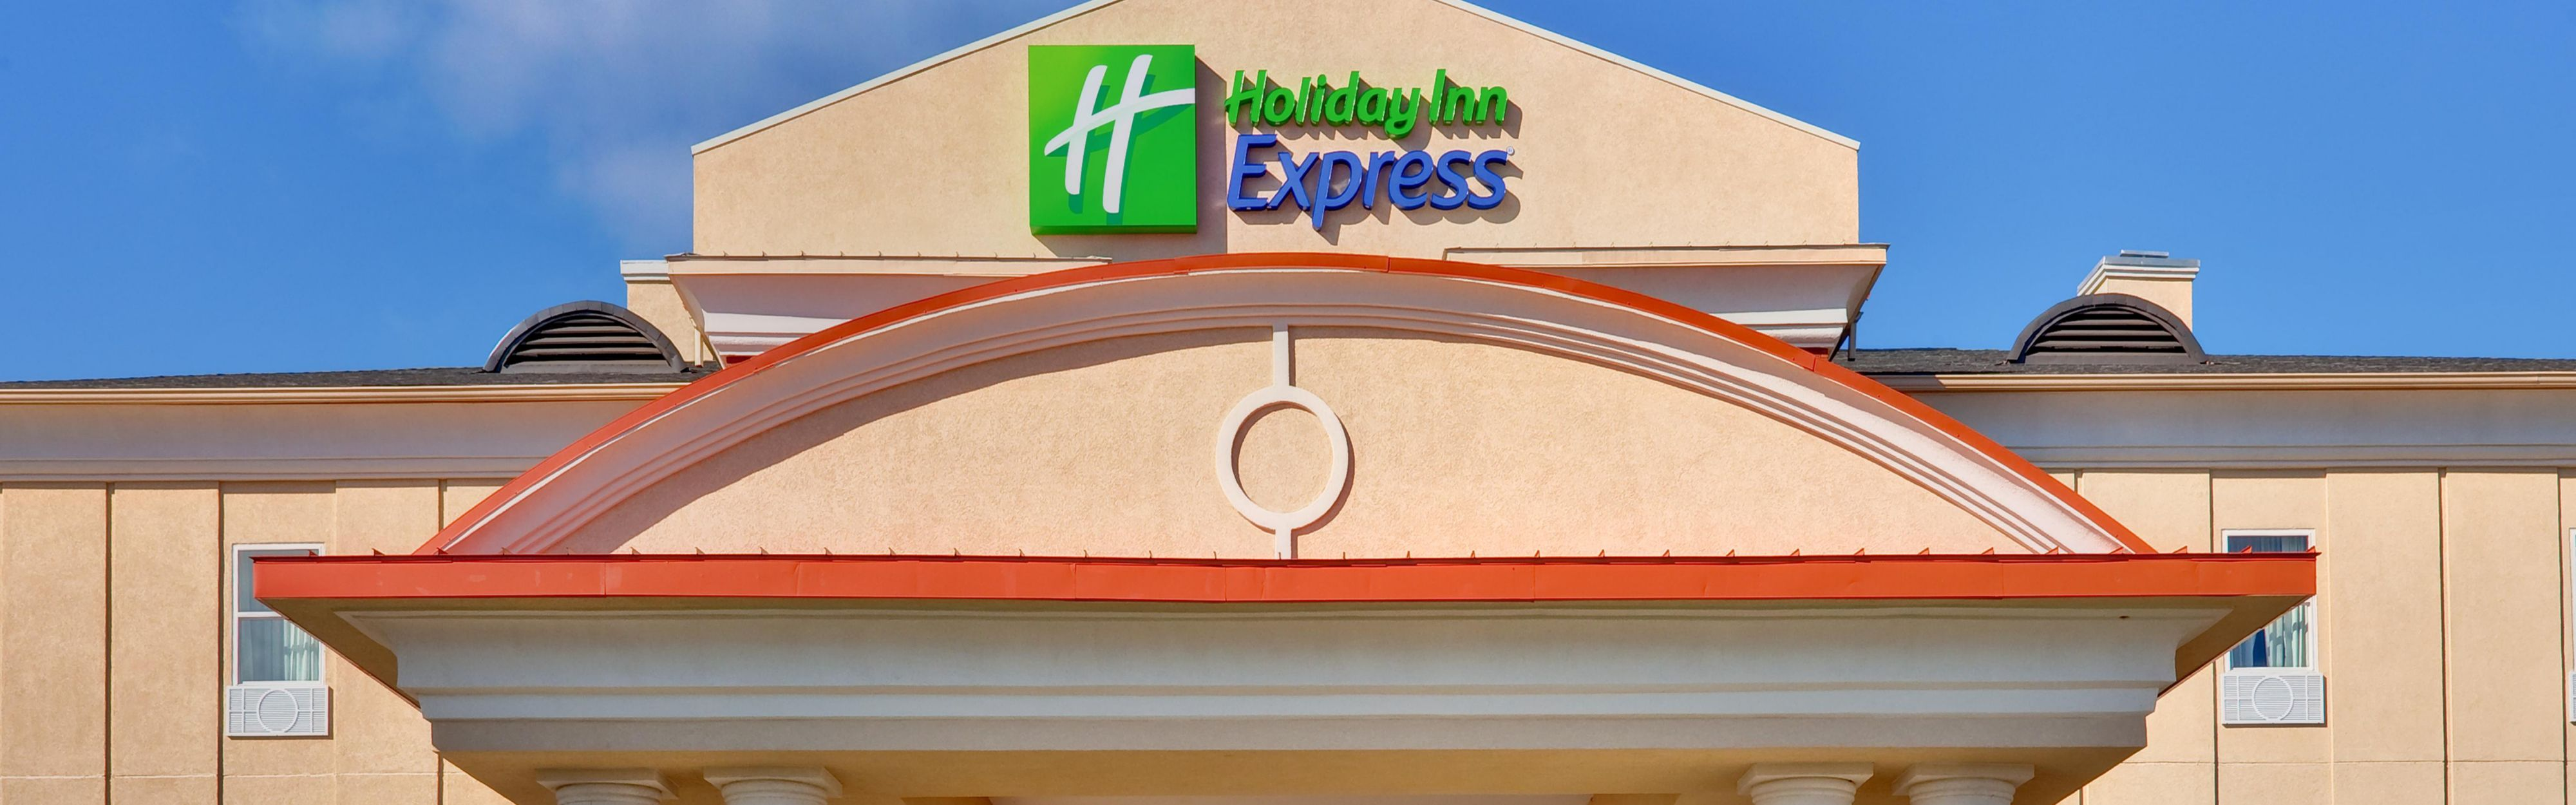 Holiday Inn Express Mccomb image 0